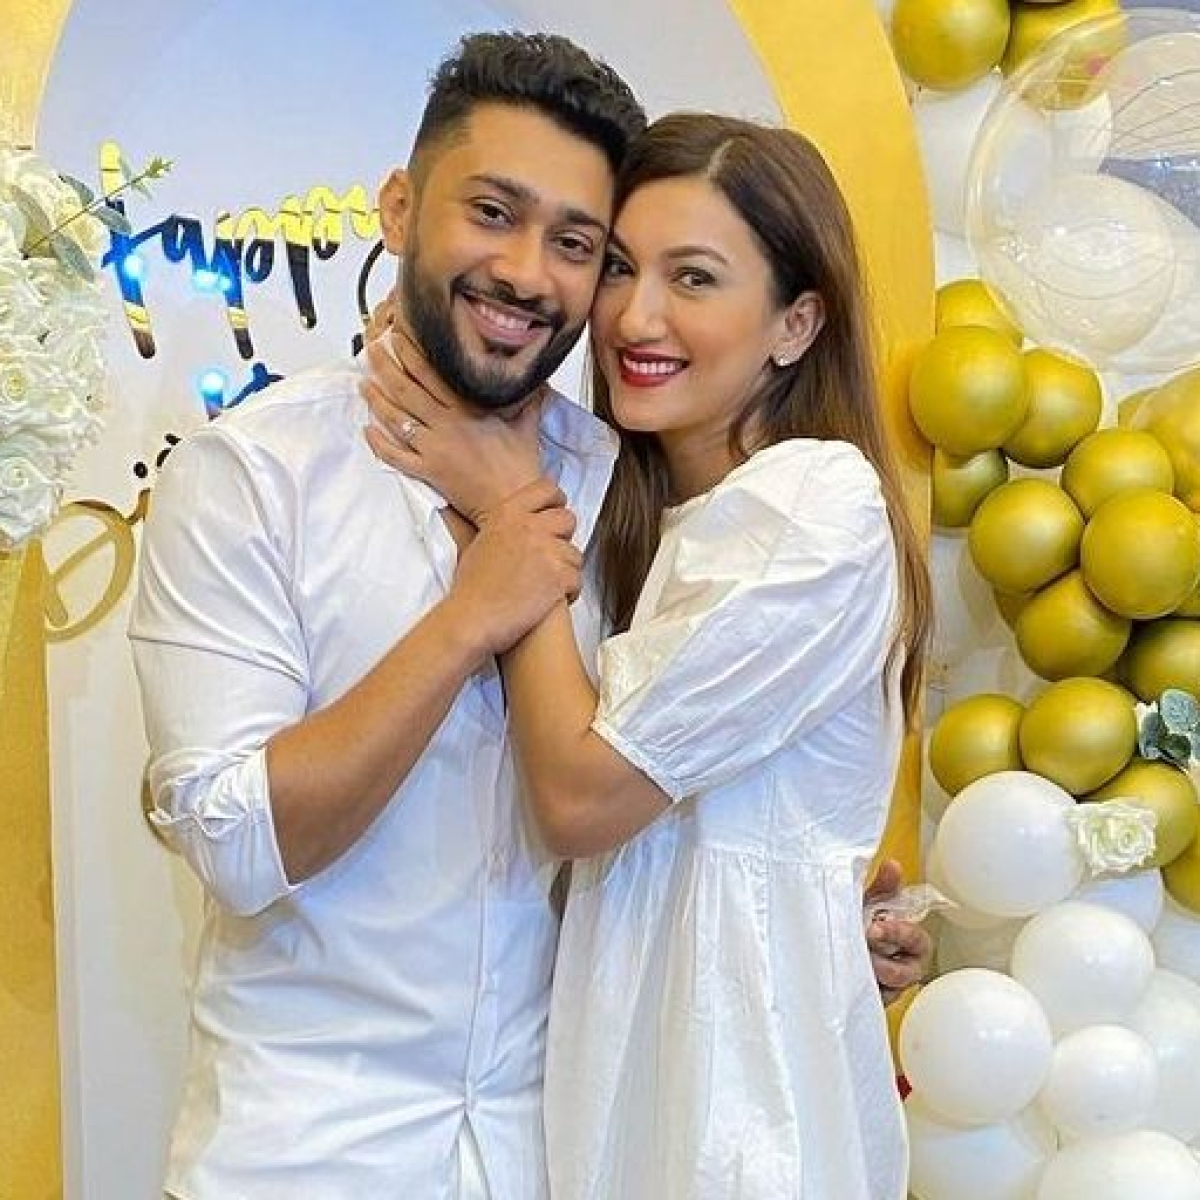 Gauahar Khan reacts to reports on '12-year age gap' with fiancé Zaid Darbar, makes things 'clear'